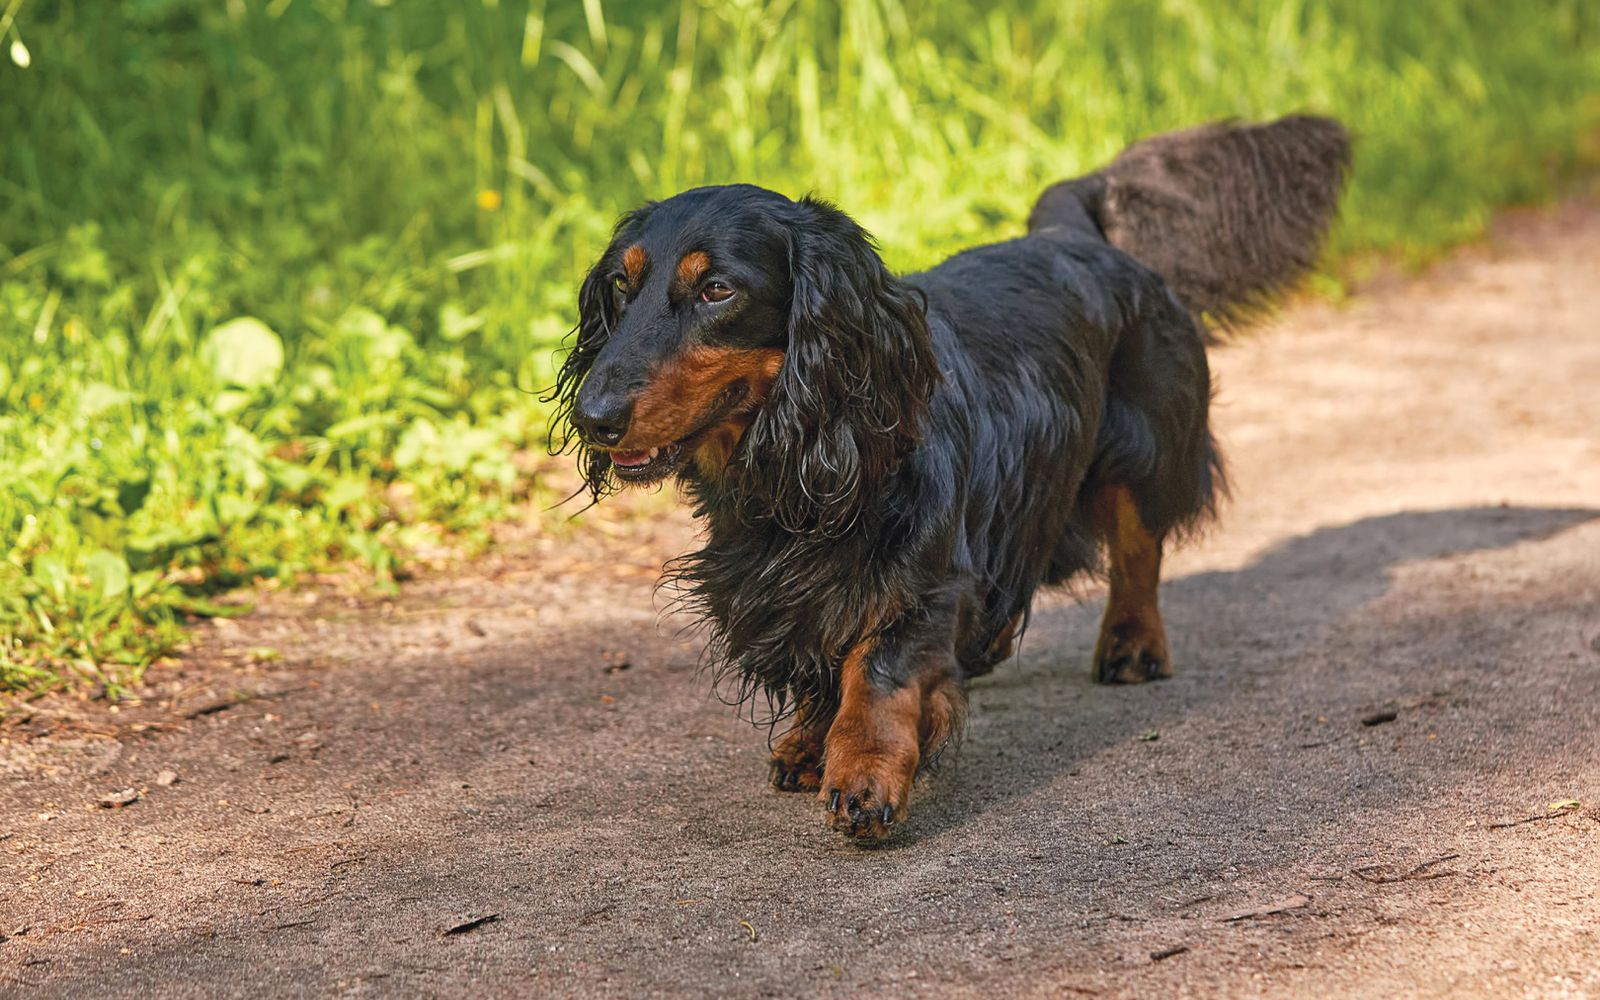 Dachshund (Miniature Long Haired) - Lifestyle